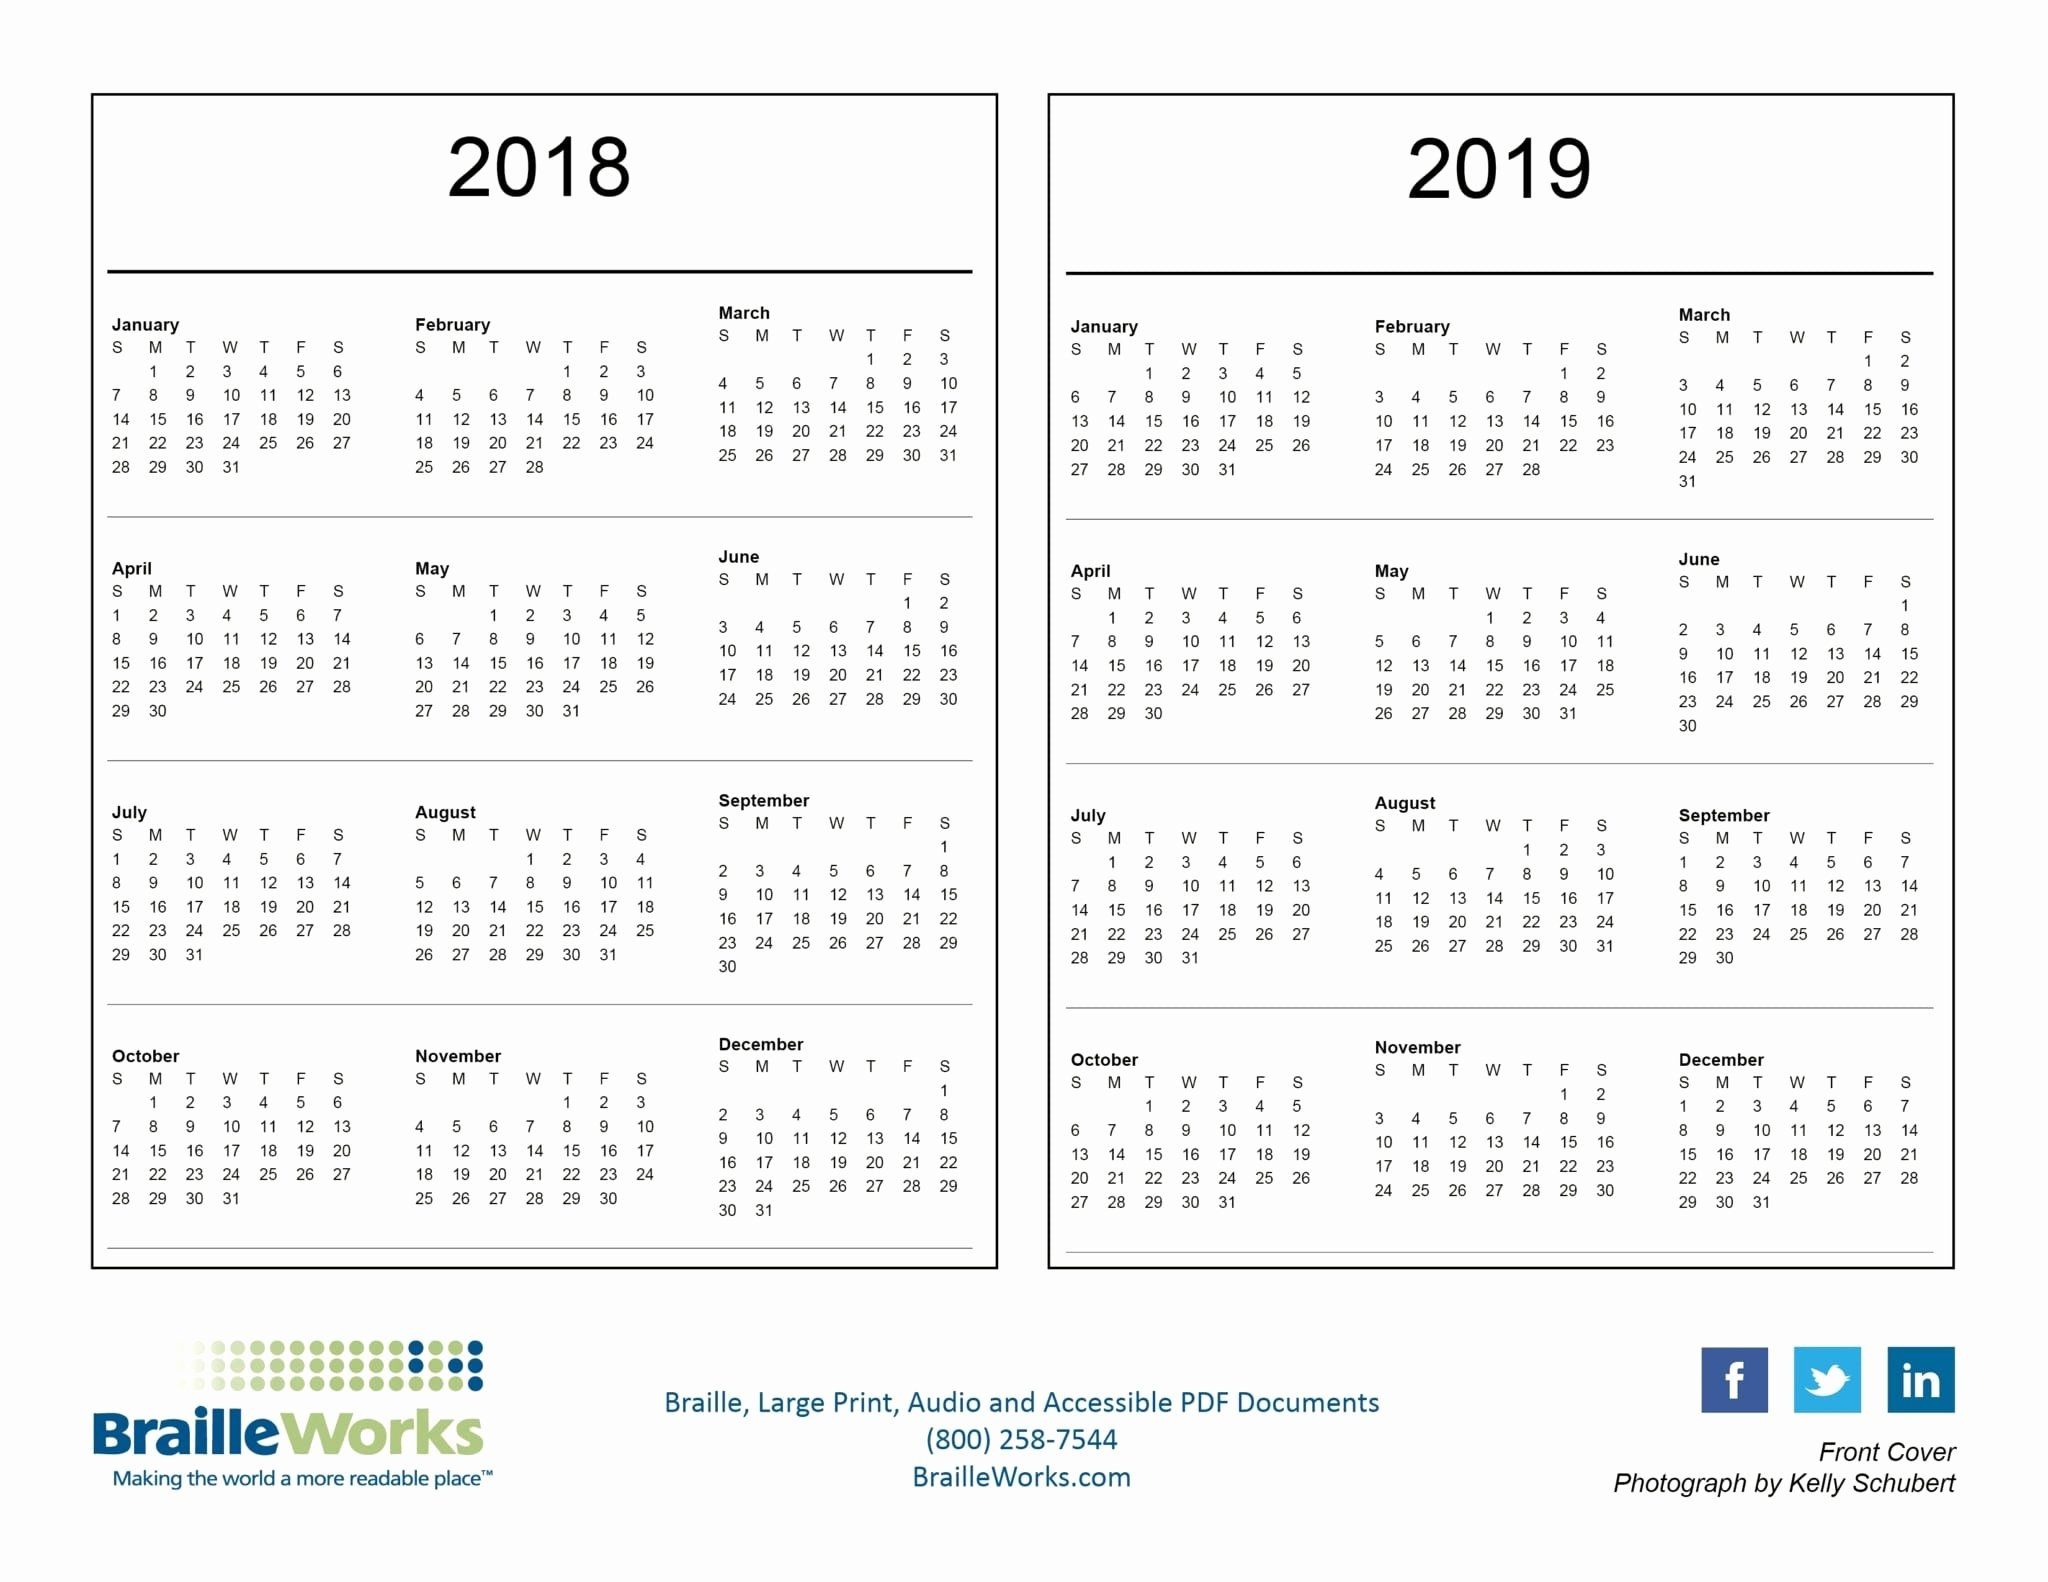 Uconn Academic Calendar 2018 2019 Braille Calendars Attractive And Calendar 2019 Uconn